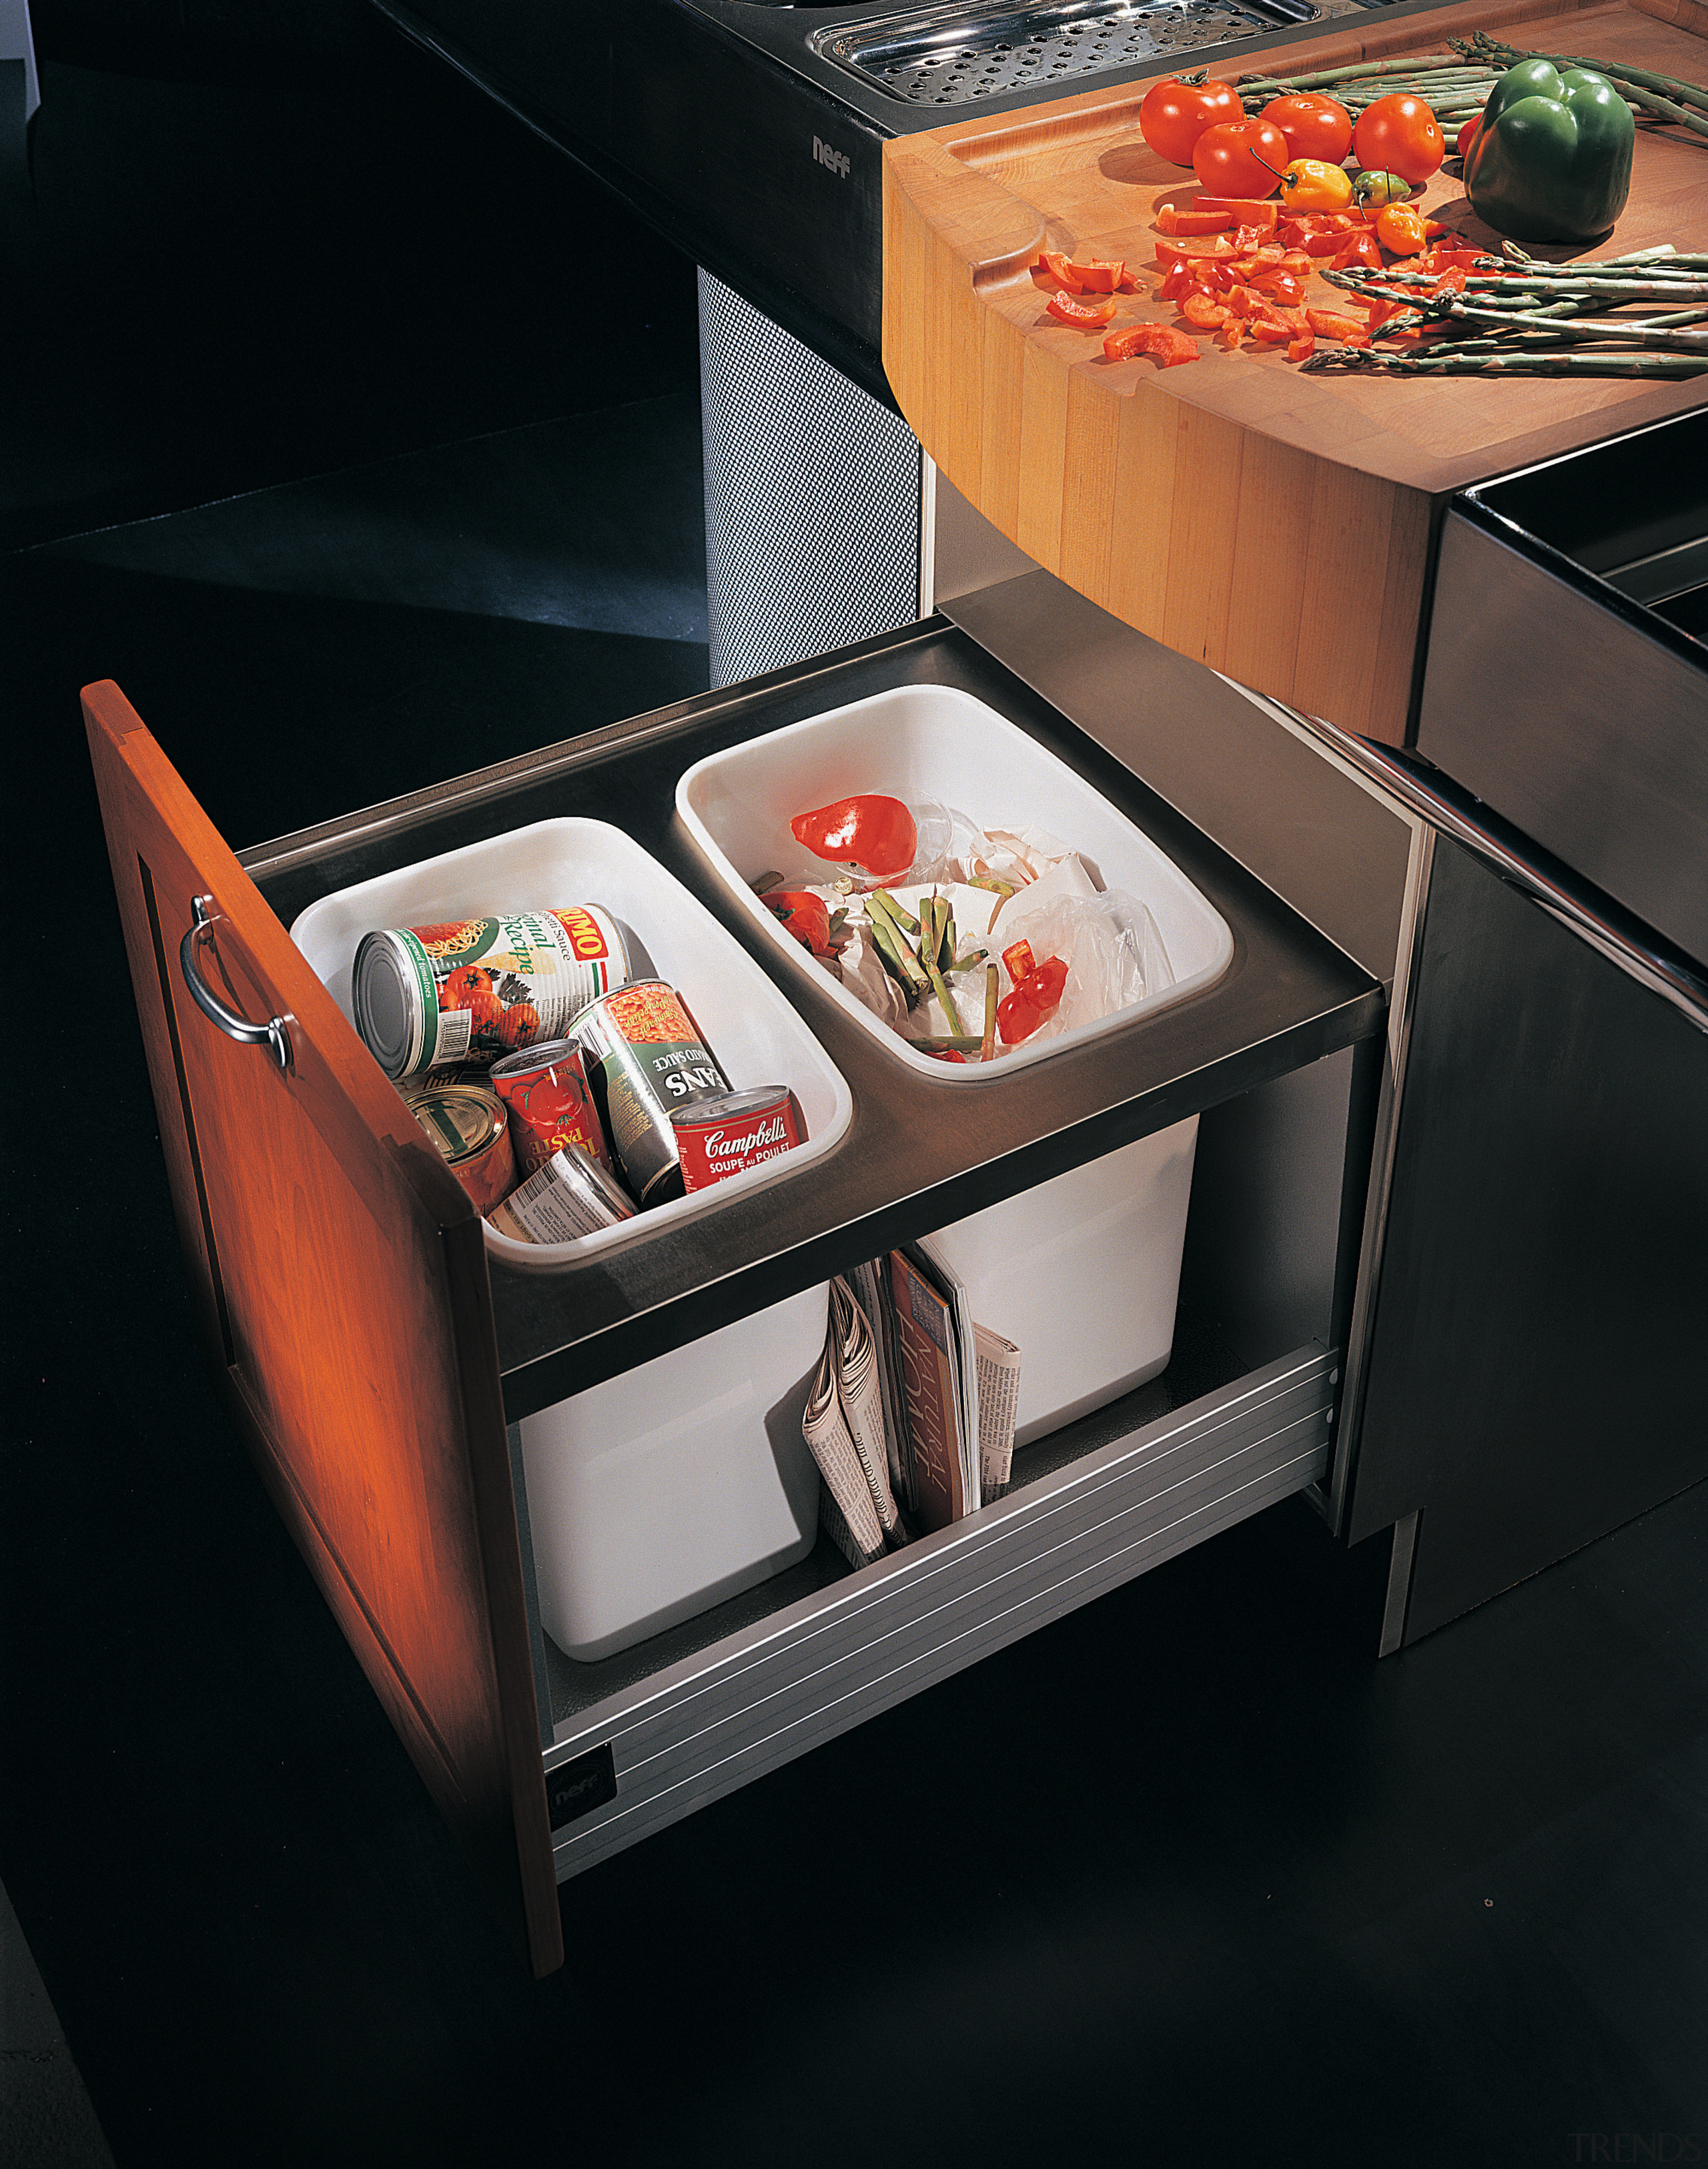 View of the cabinetry - View of the display case, furniture, home appliance, kitchen appliance, table, black